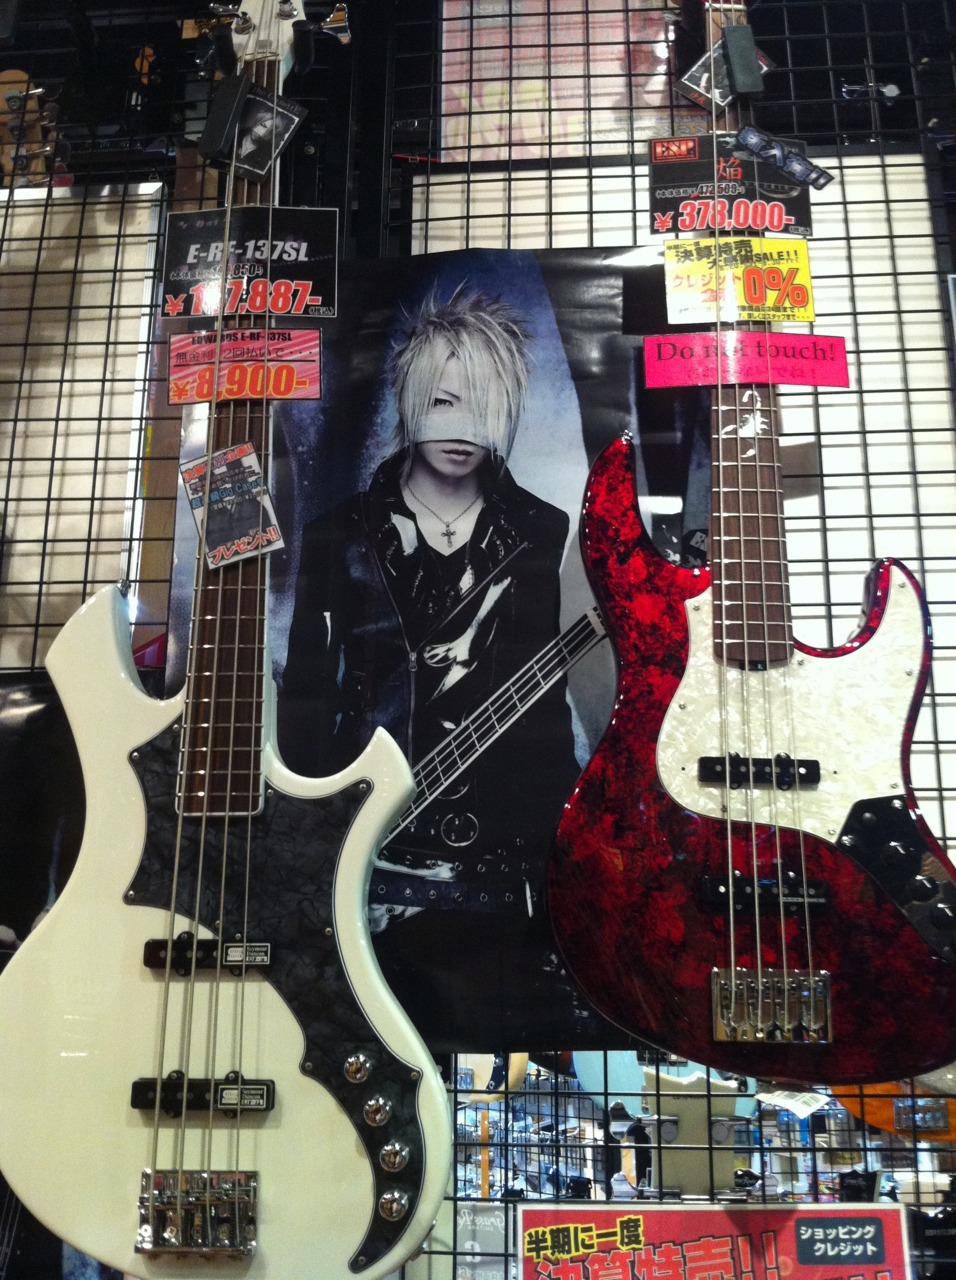 Walked into Big Boss in Osu Kannon in Nagoya today and found both of Aoi's guitars marked down. Seeing them up close like that made me want to have standing bar at another GazettE concert. None of Uru's were marked down, and they didn't have either of his Hellions, the white or the awesome green one. Reita's gear, like Aoi's, were on sale though!  And though I'm not a fan, I got to see all of Nightmare's instruments. They obviously made a visit to the store when the GIGS magazine came out since they each signed their own poster for the store. I couldn't get a shot of the posters and the instruments together because of the way they were hanging. Even though I haven't listened to their music, I would've liked to have seen them! I think I'll give their music a try, now that I've been up close and personal with their guitars and bass!